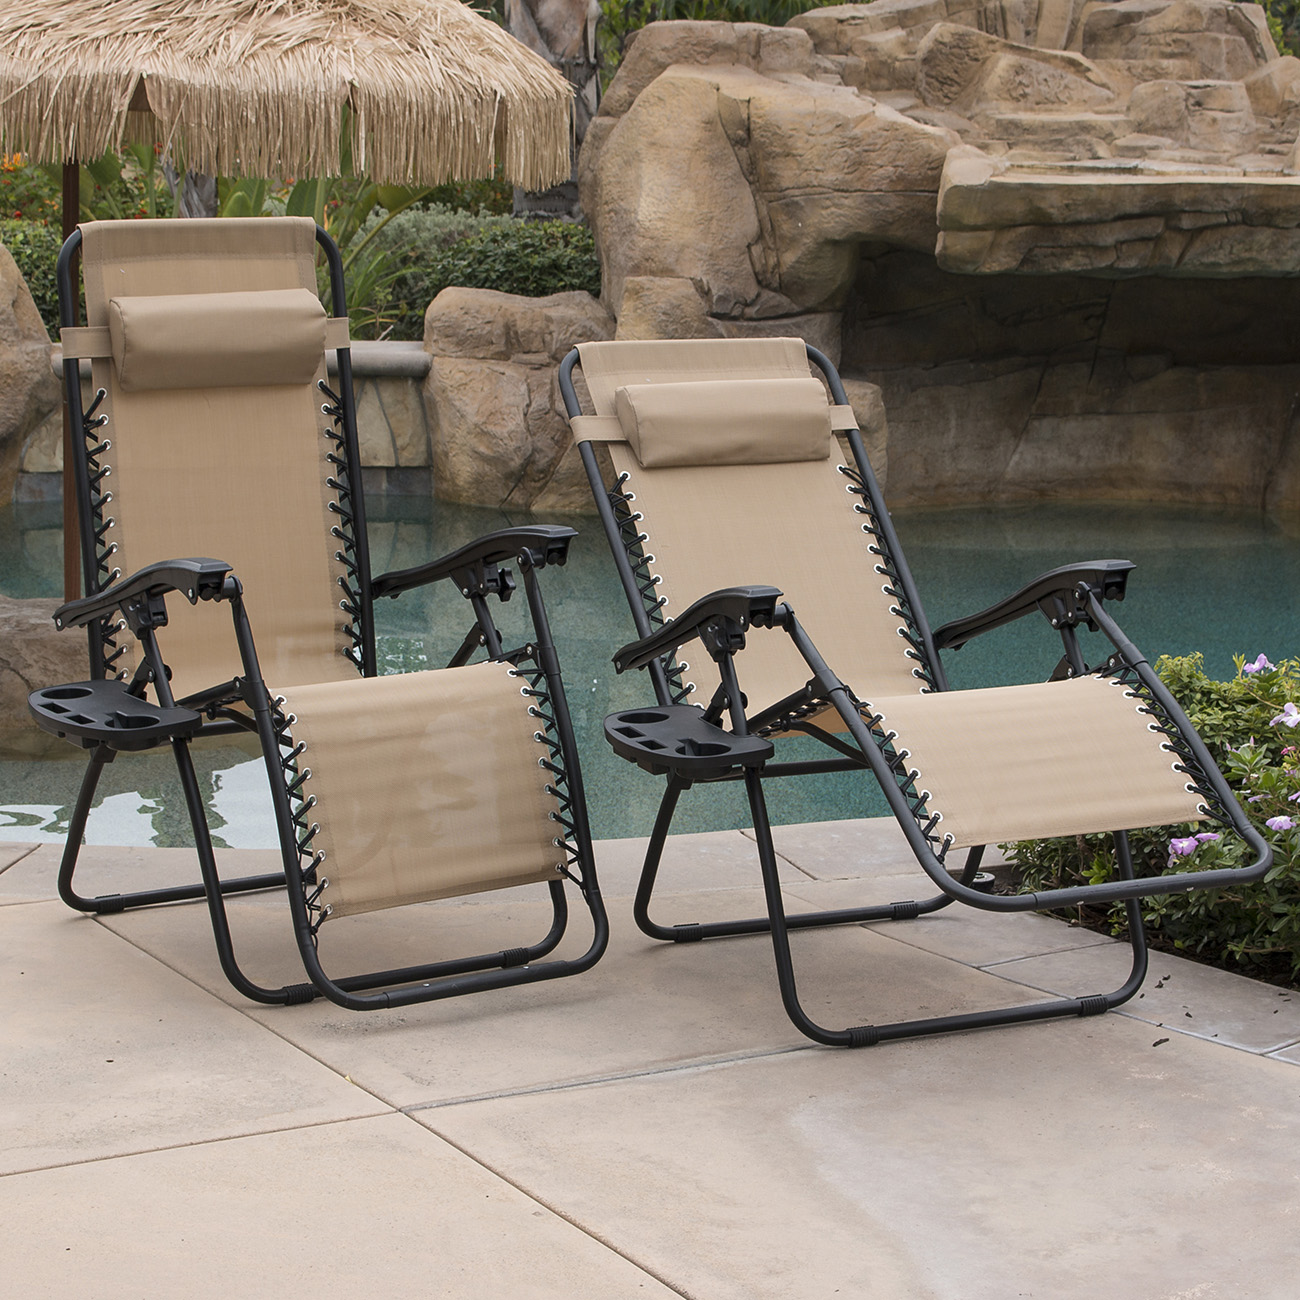 Folding Lounge Beach Chair Brief Overview About The Folding Patio Chairs